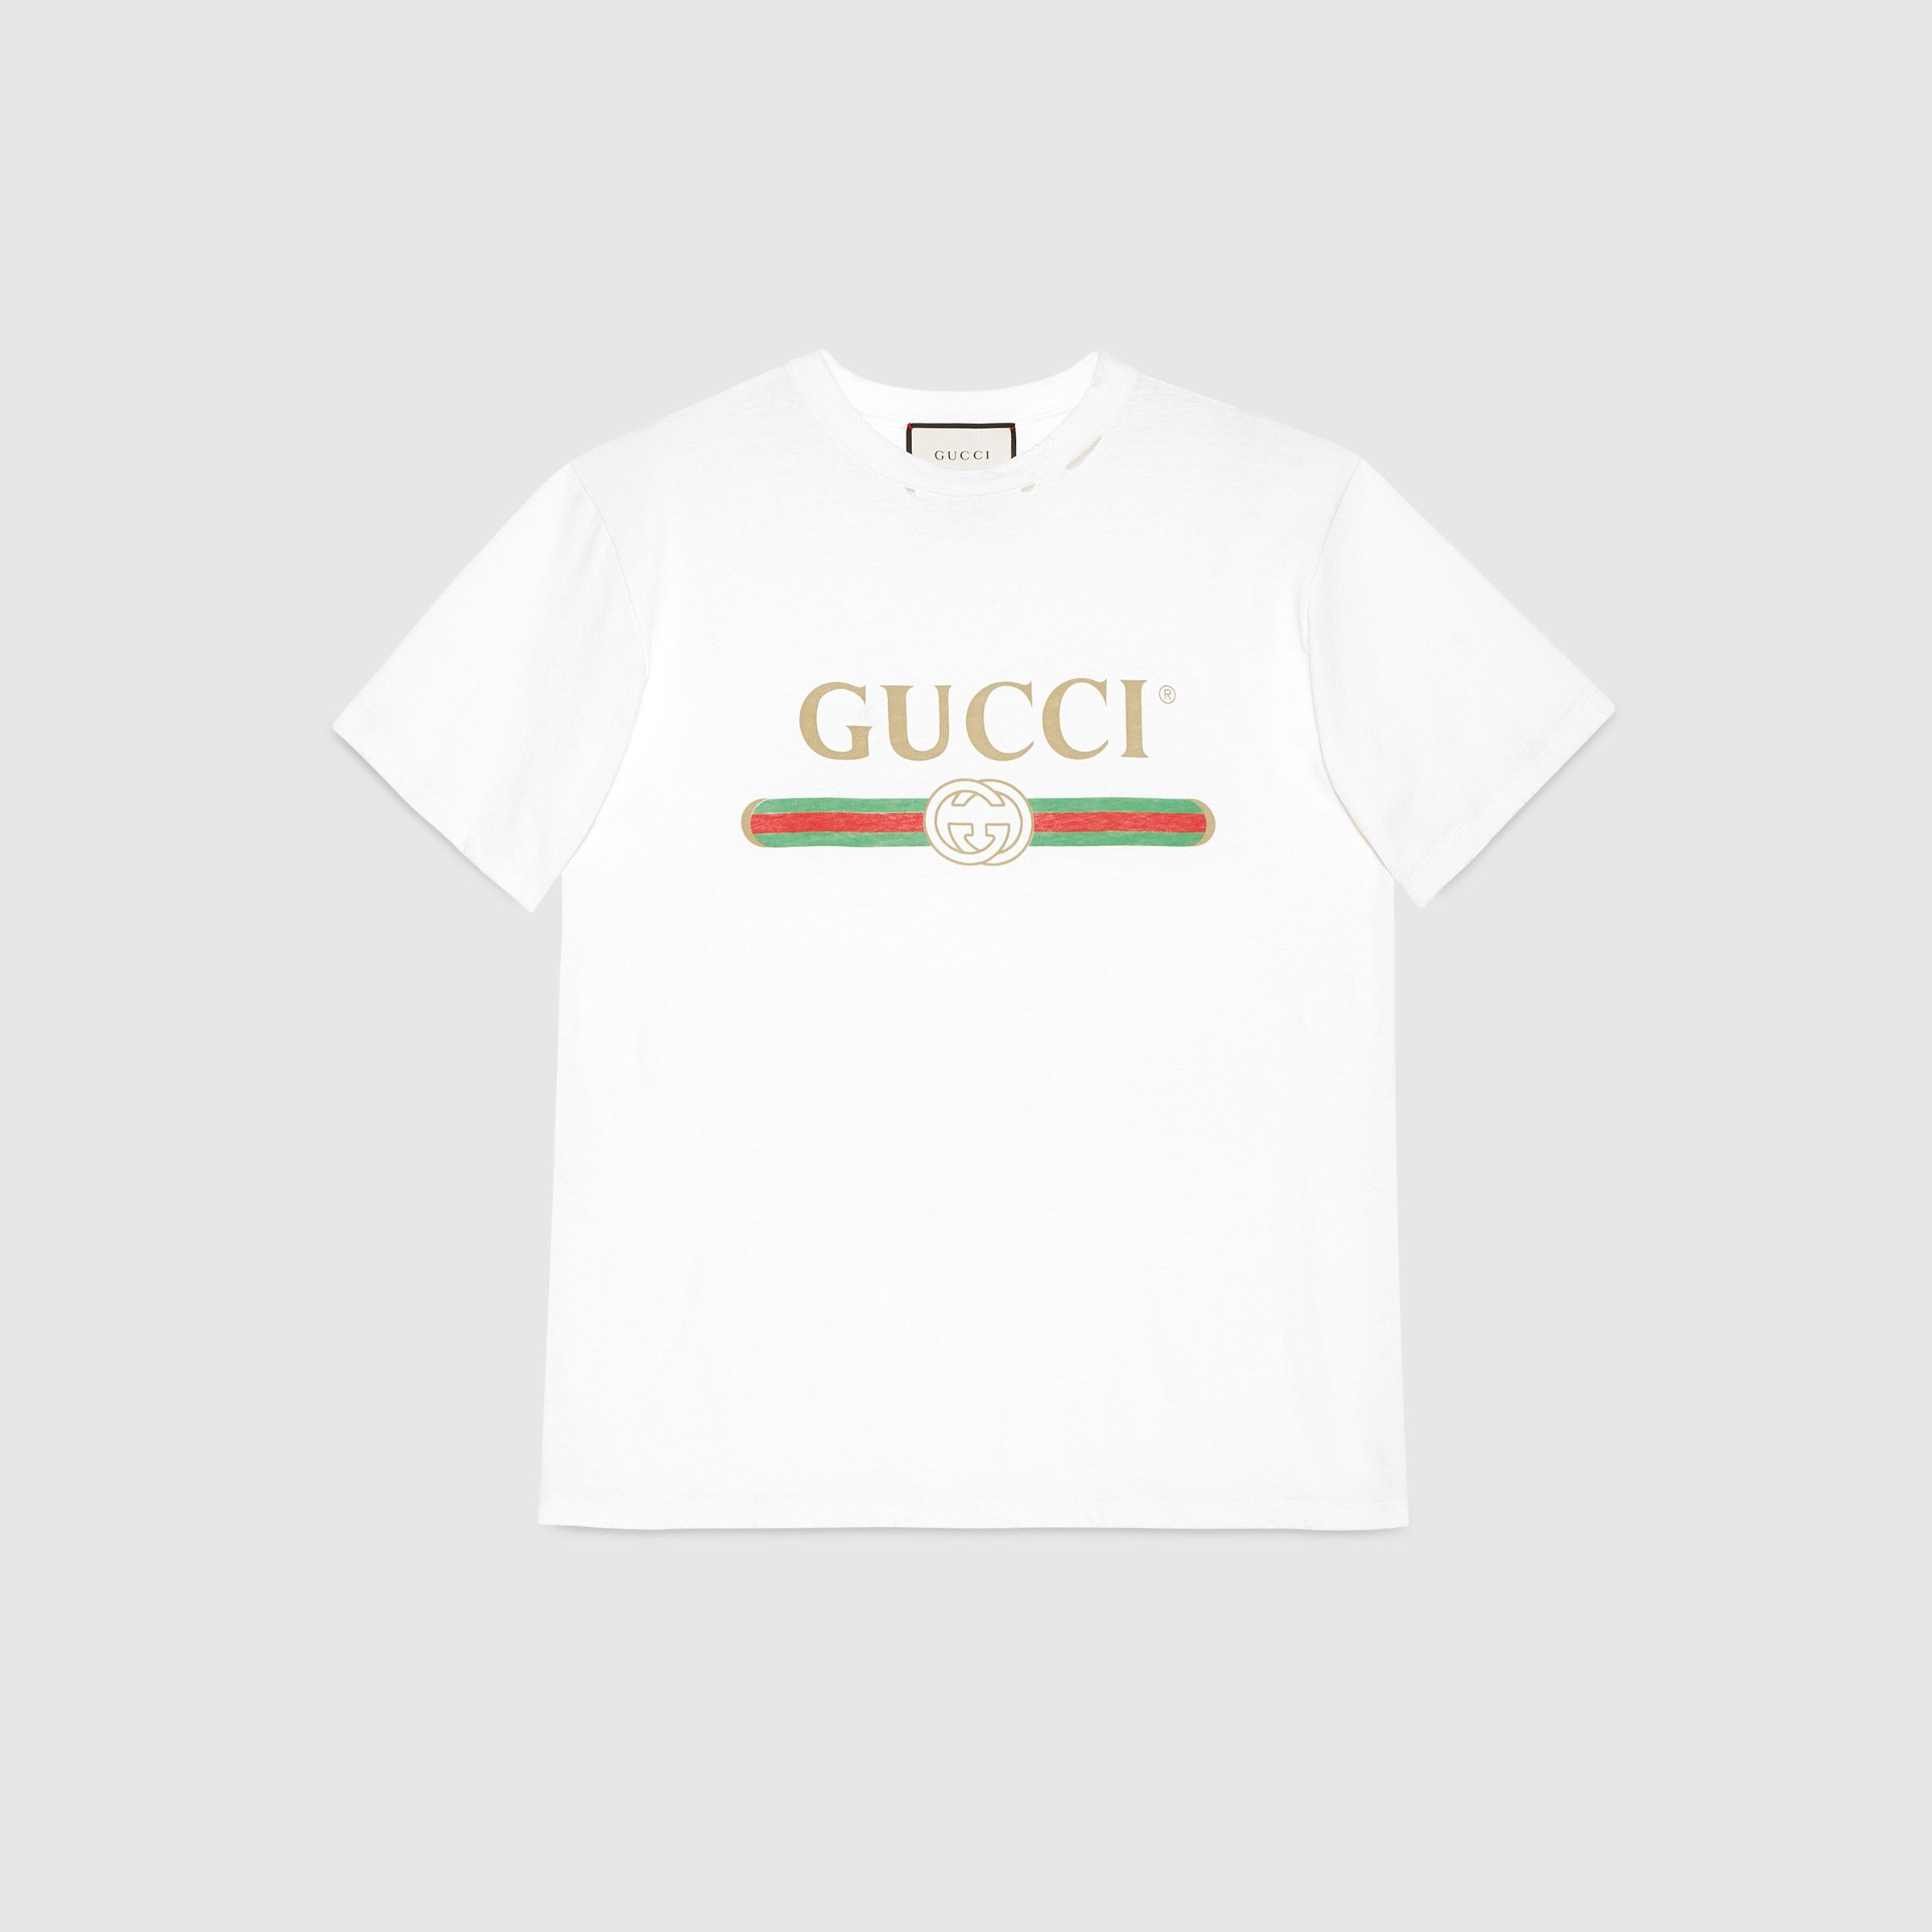 950905ab8 Oversize T-shirt with Gucci logo in 2019 | Summer fashion... Moda ...